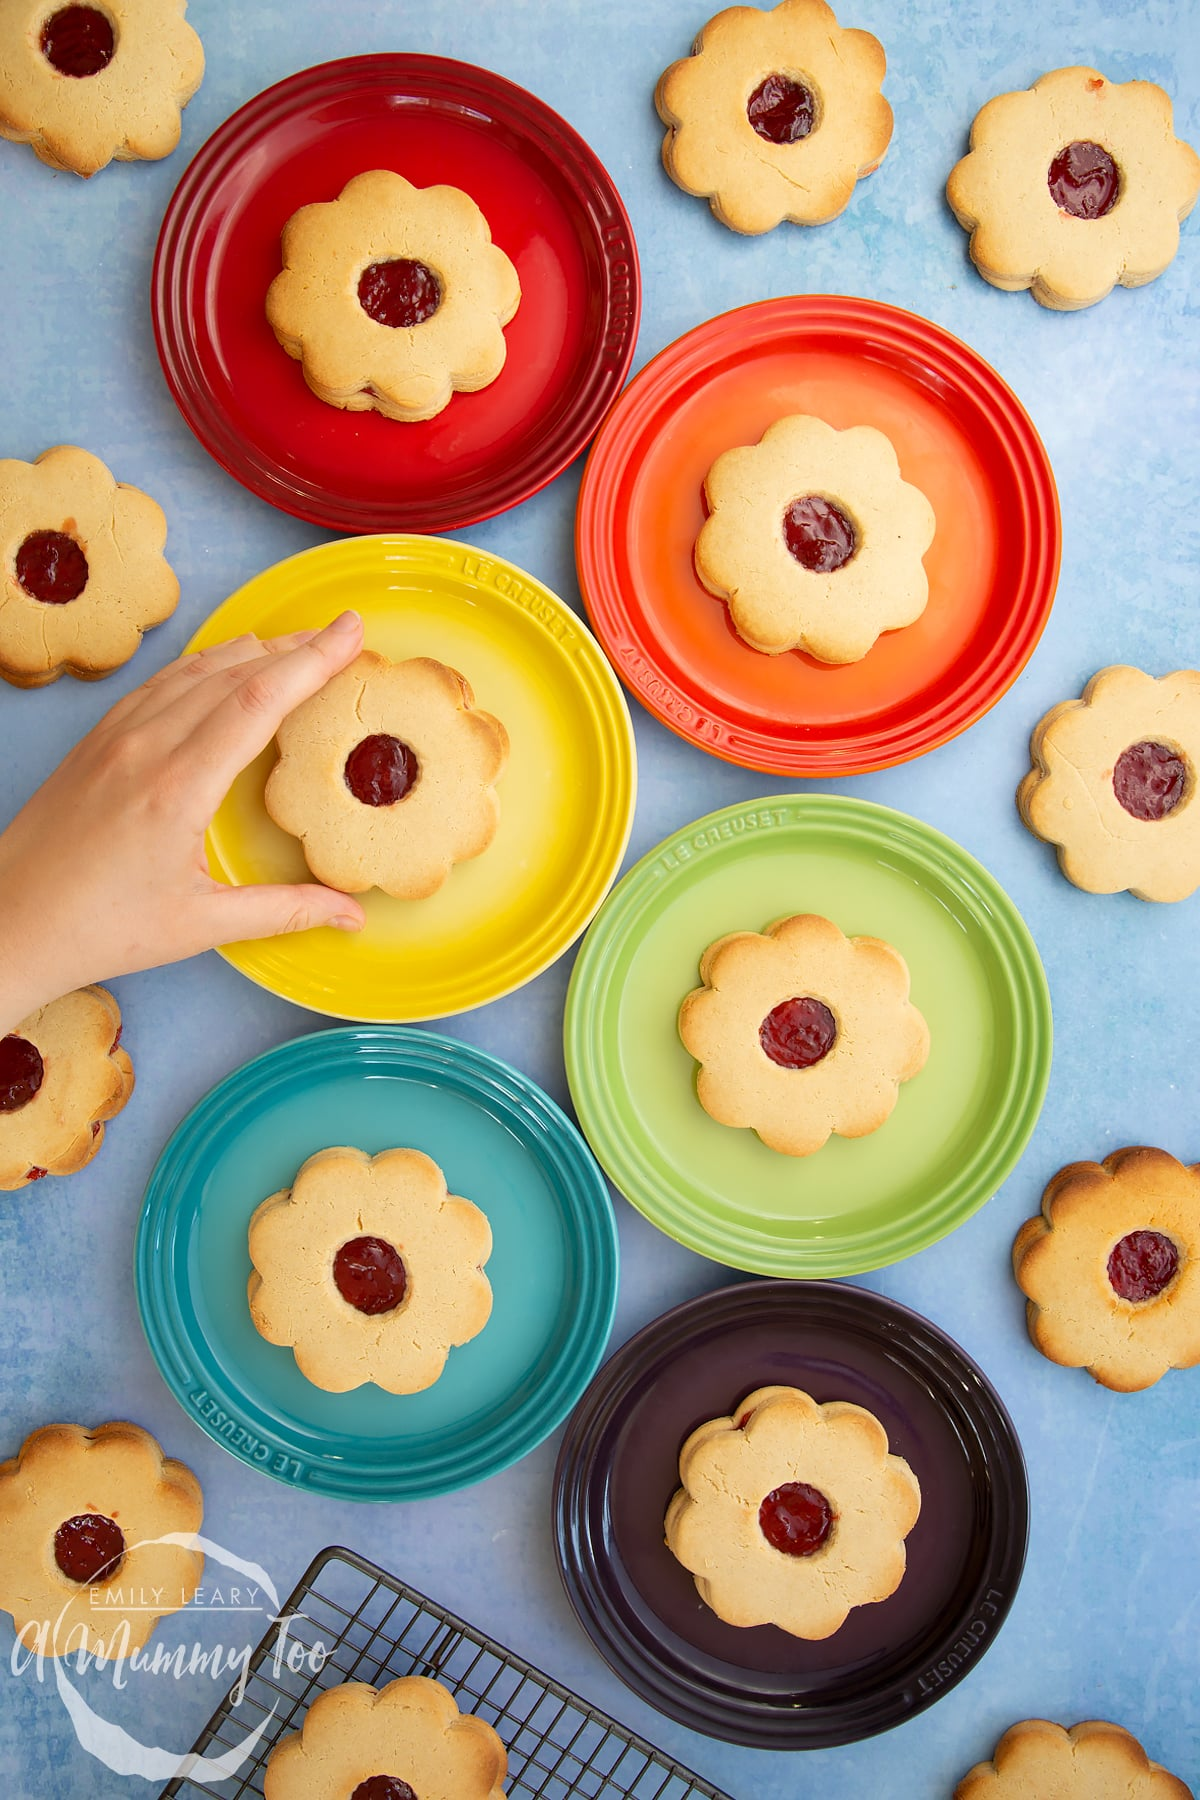 Giant jammie dodgers arranged on a variety of coloured small plates. A hand reaches in to take one from the yellow plate.